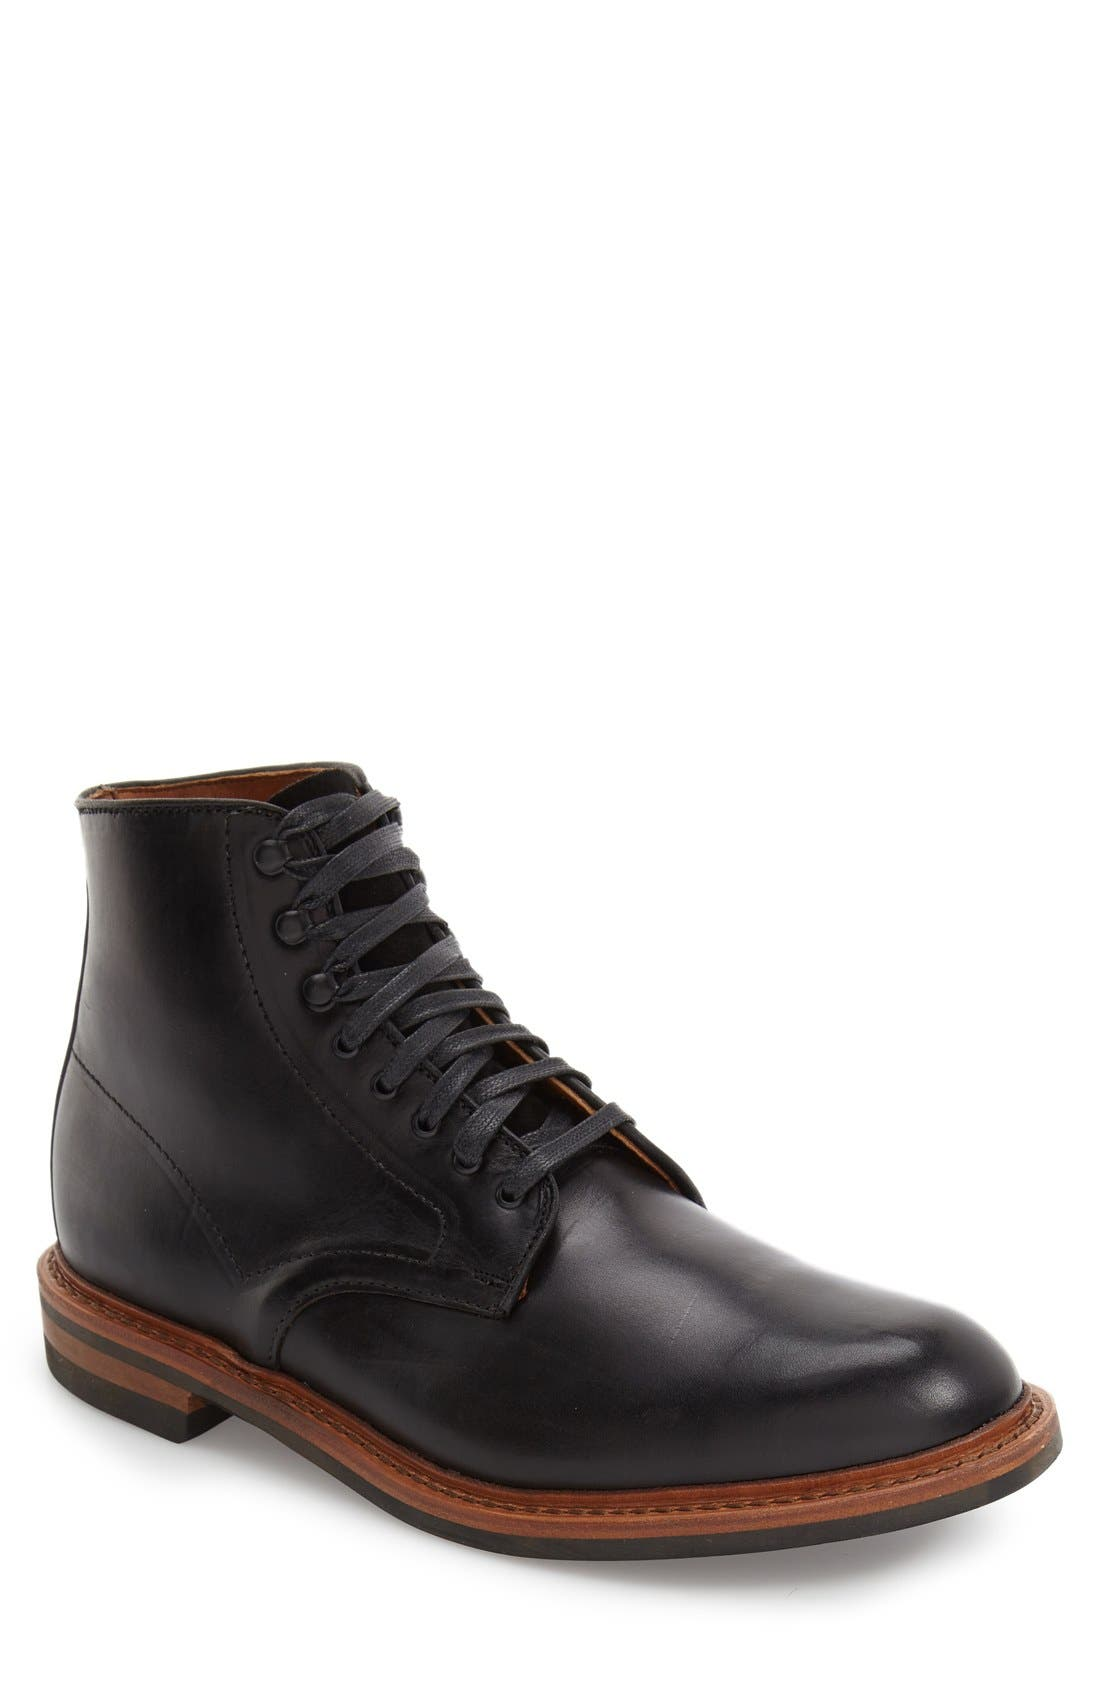 ALLEN EDMONDS 'Higgins Mill' Plain Toe Boot